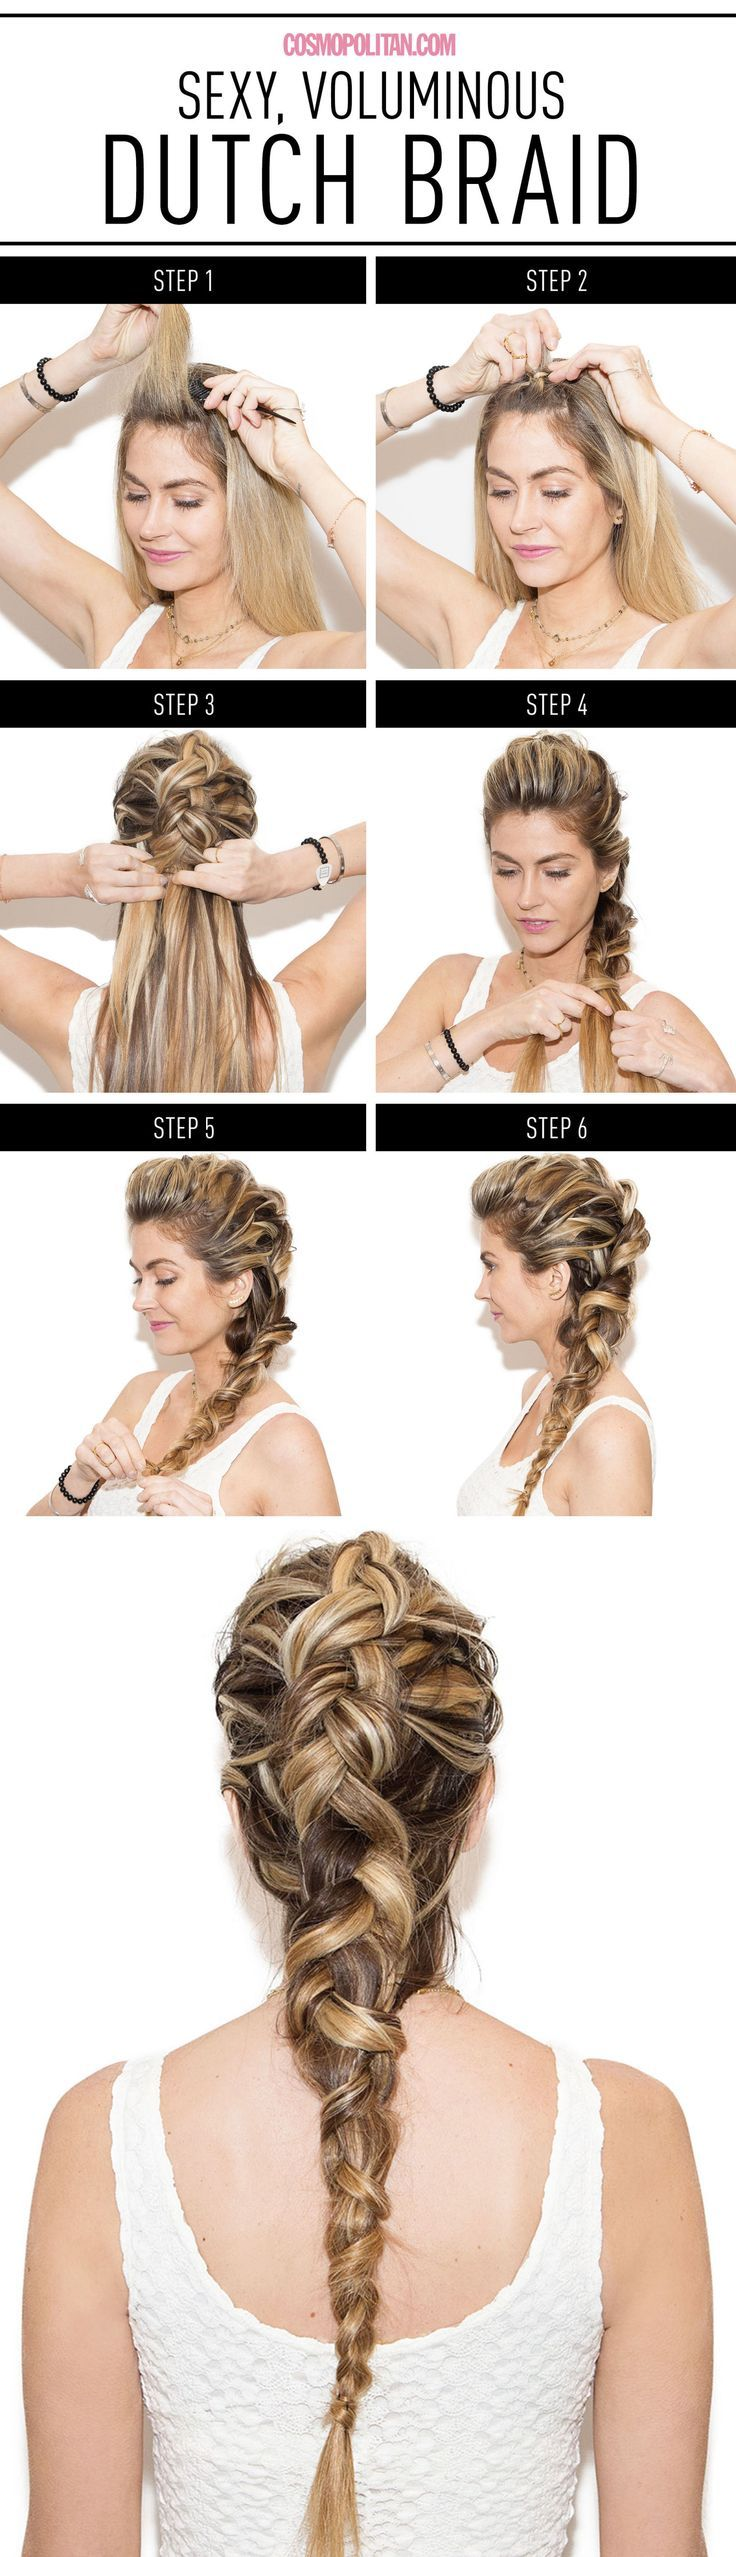 Your New Favorite Braid Will Make You Look So Hot / Cosmopolitan